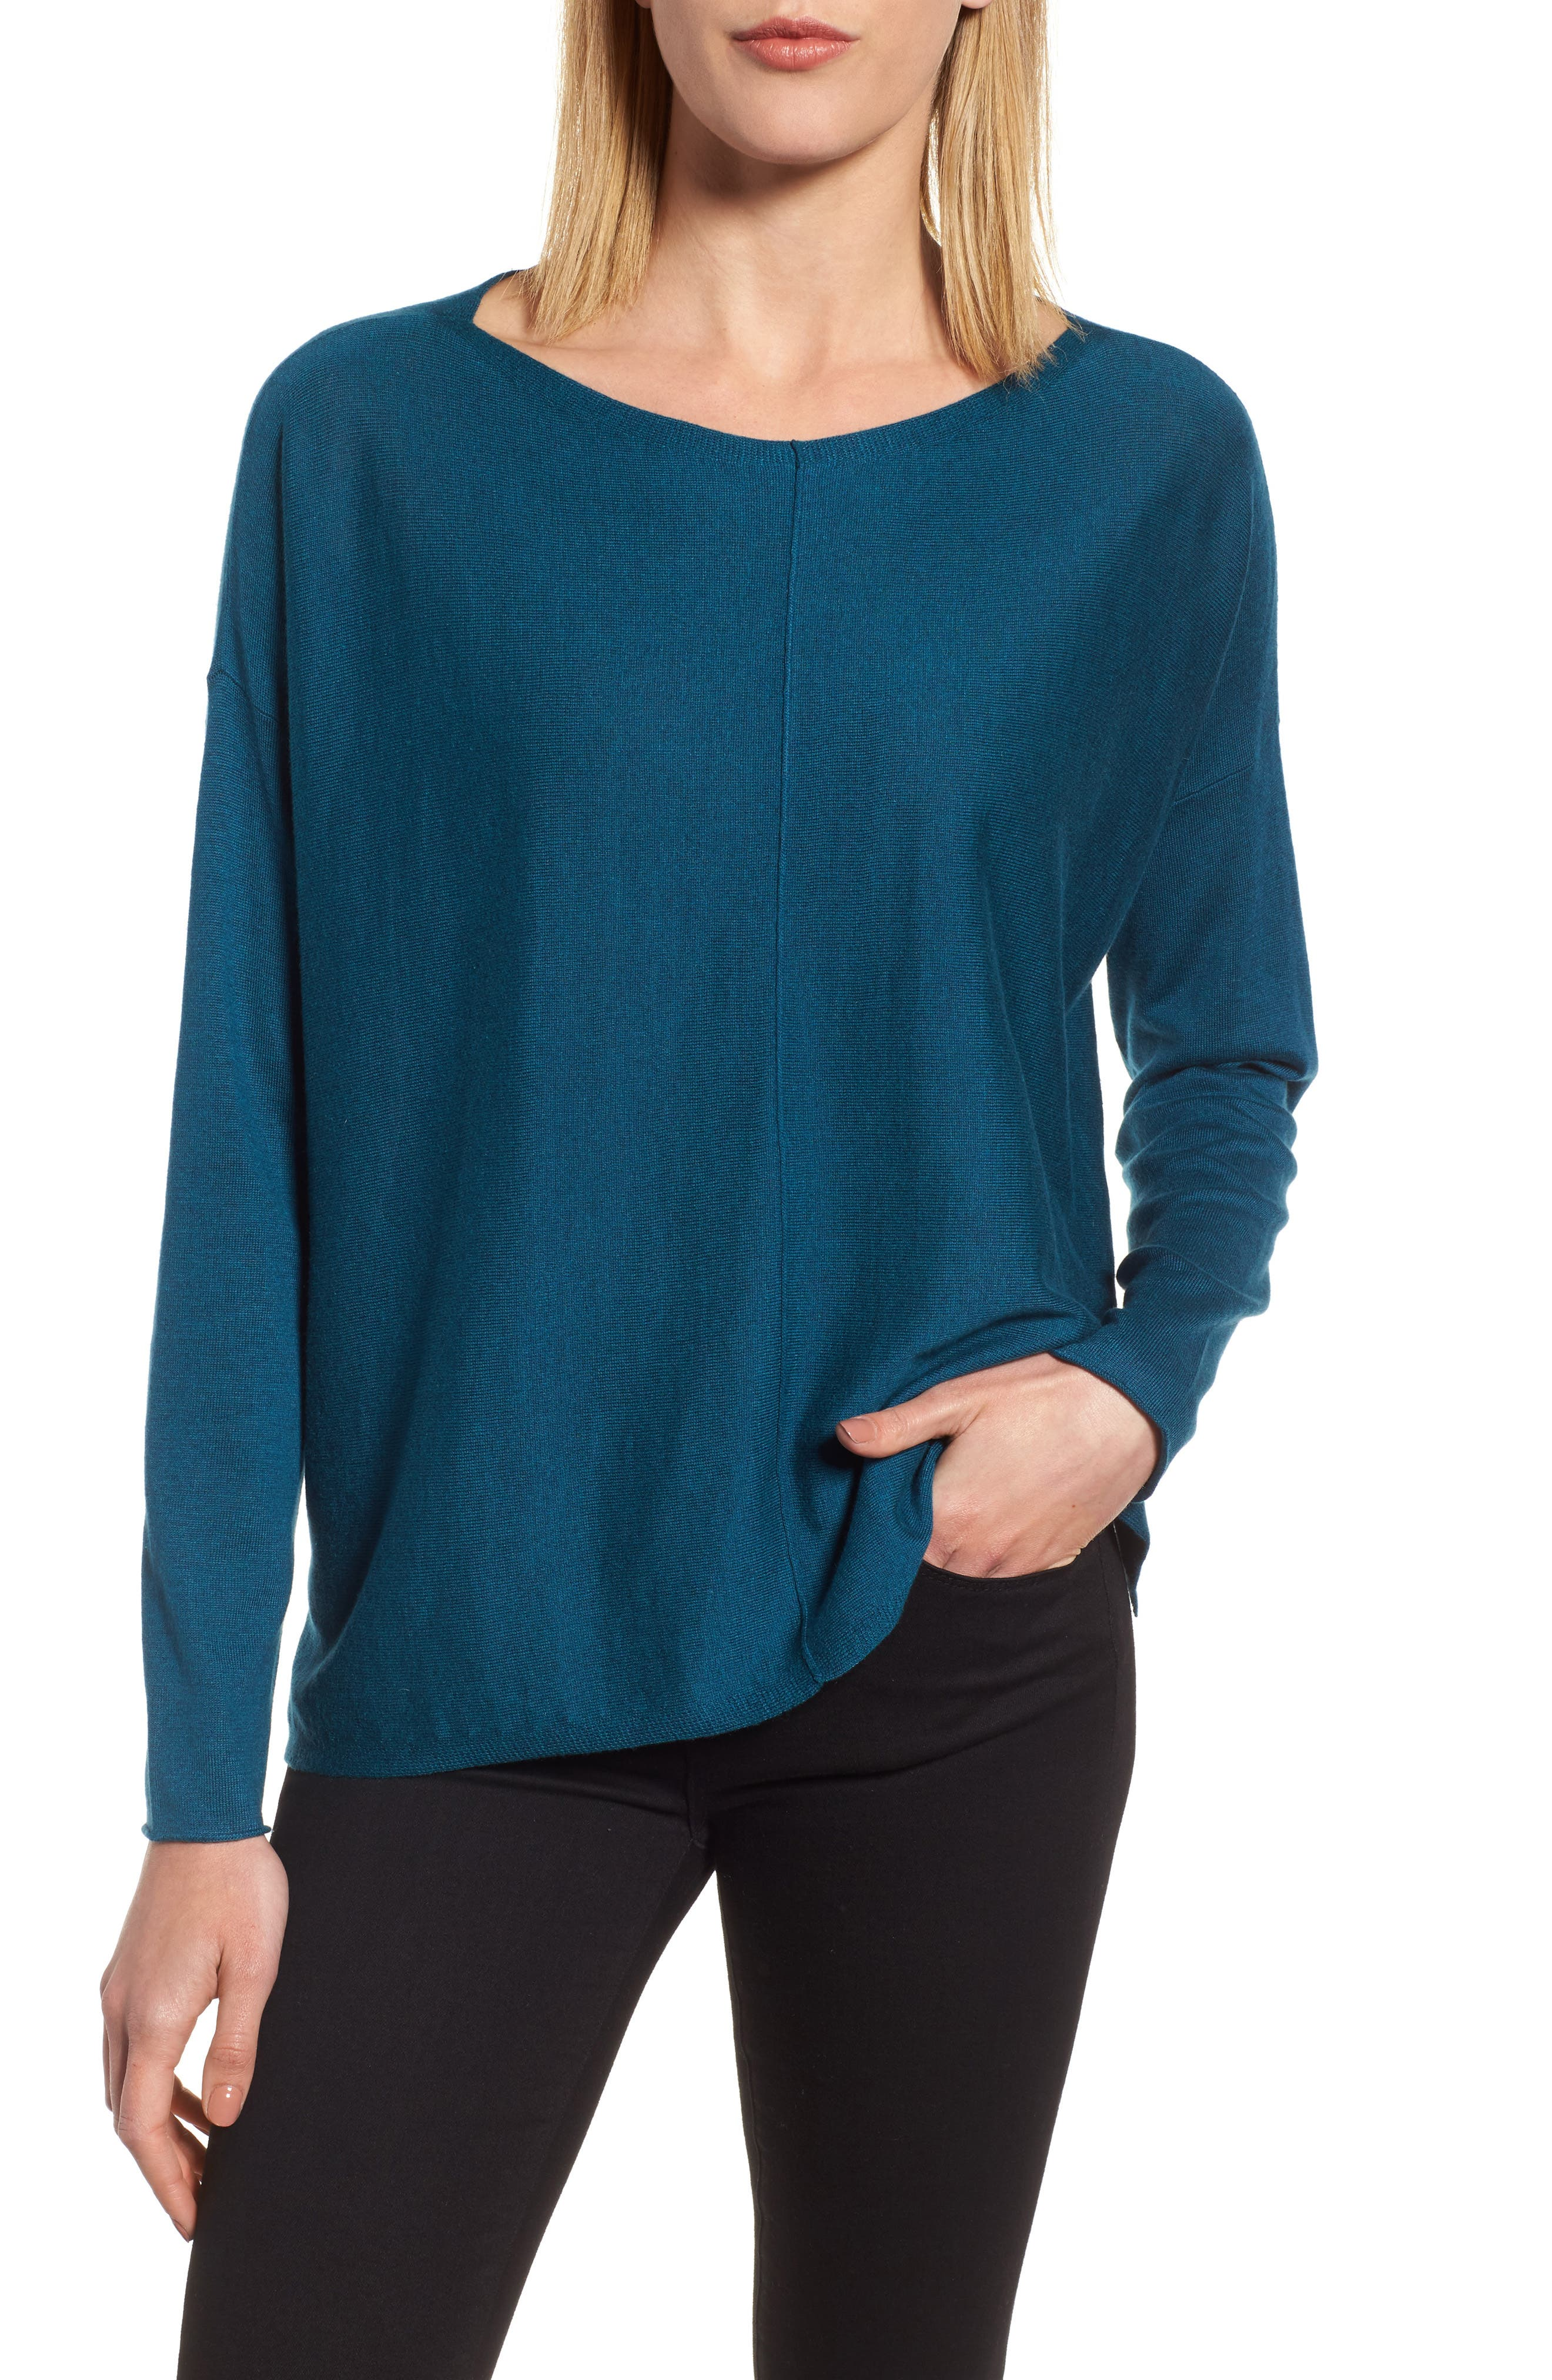 Tencel<sup>®</sup> Lyocell Blend High/Low Sweater,                             Main thumbnail 1, color,                             Blue Spruce